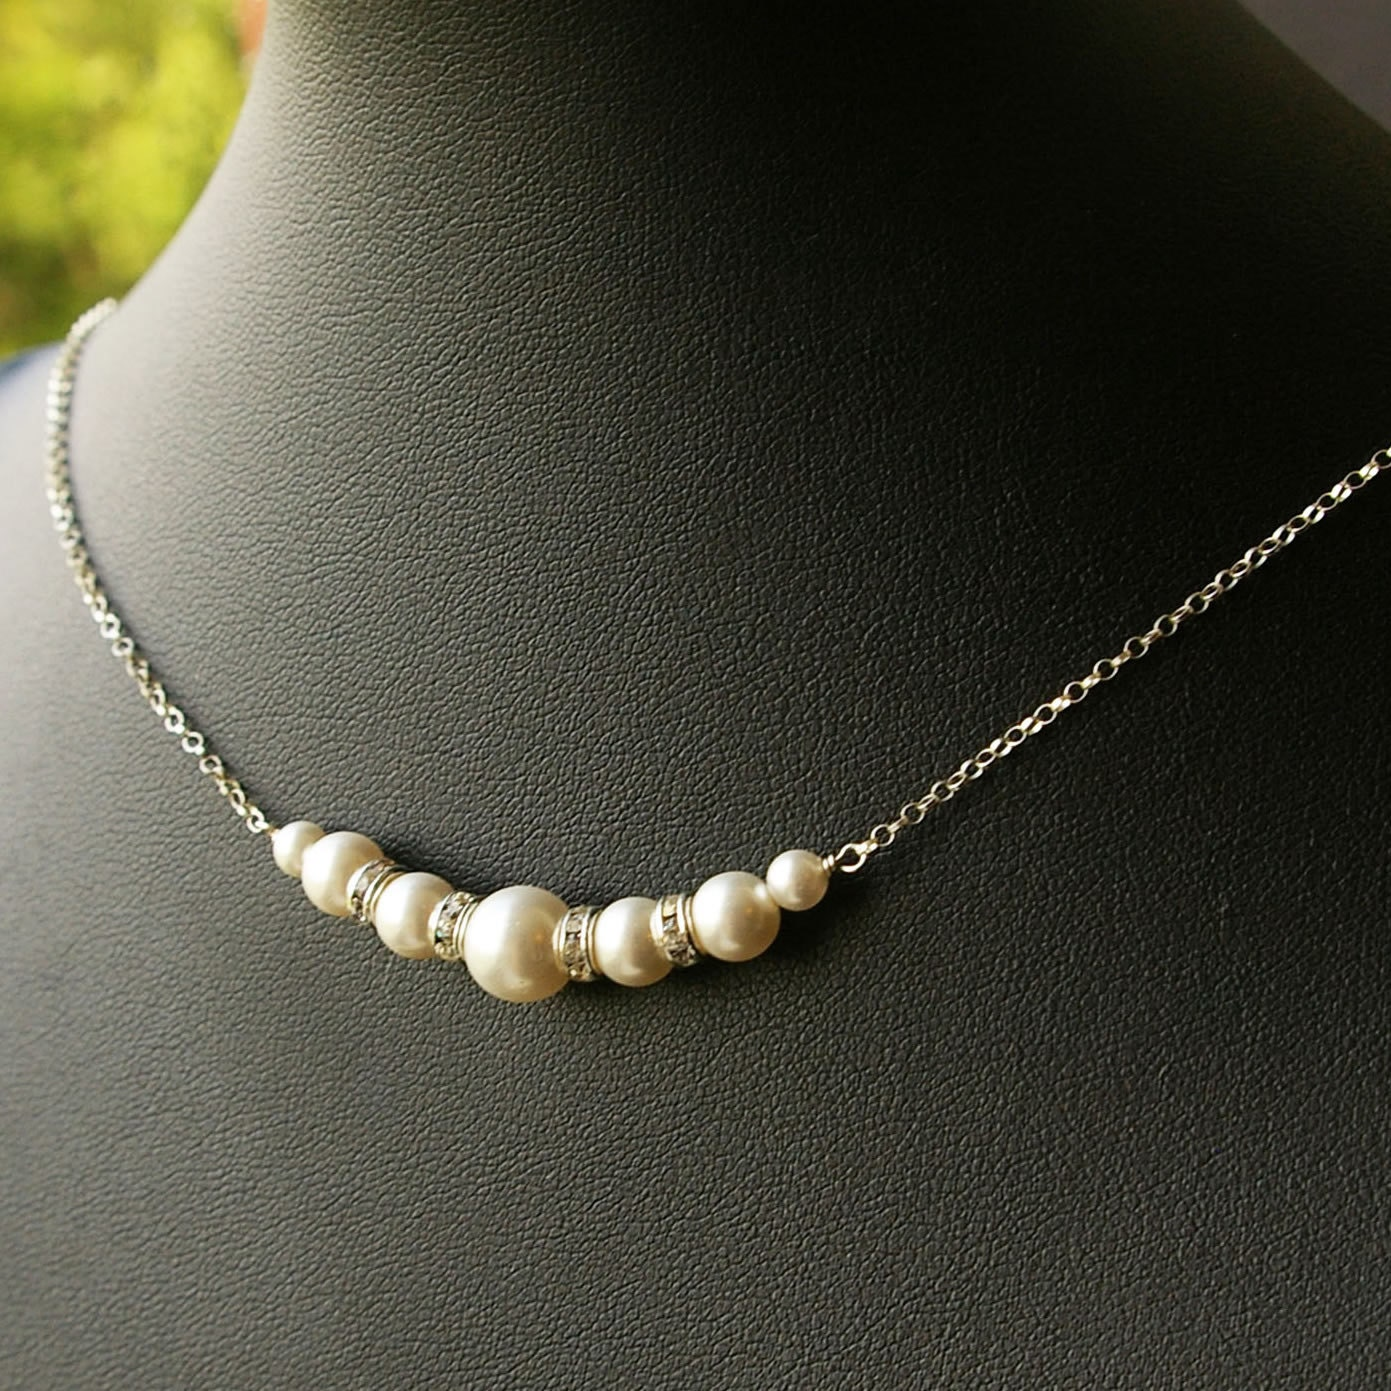 Simple Bridal Necklace Pearl Wedding Necklace Sterling